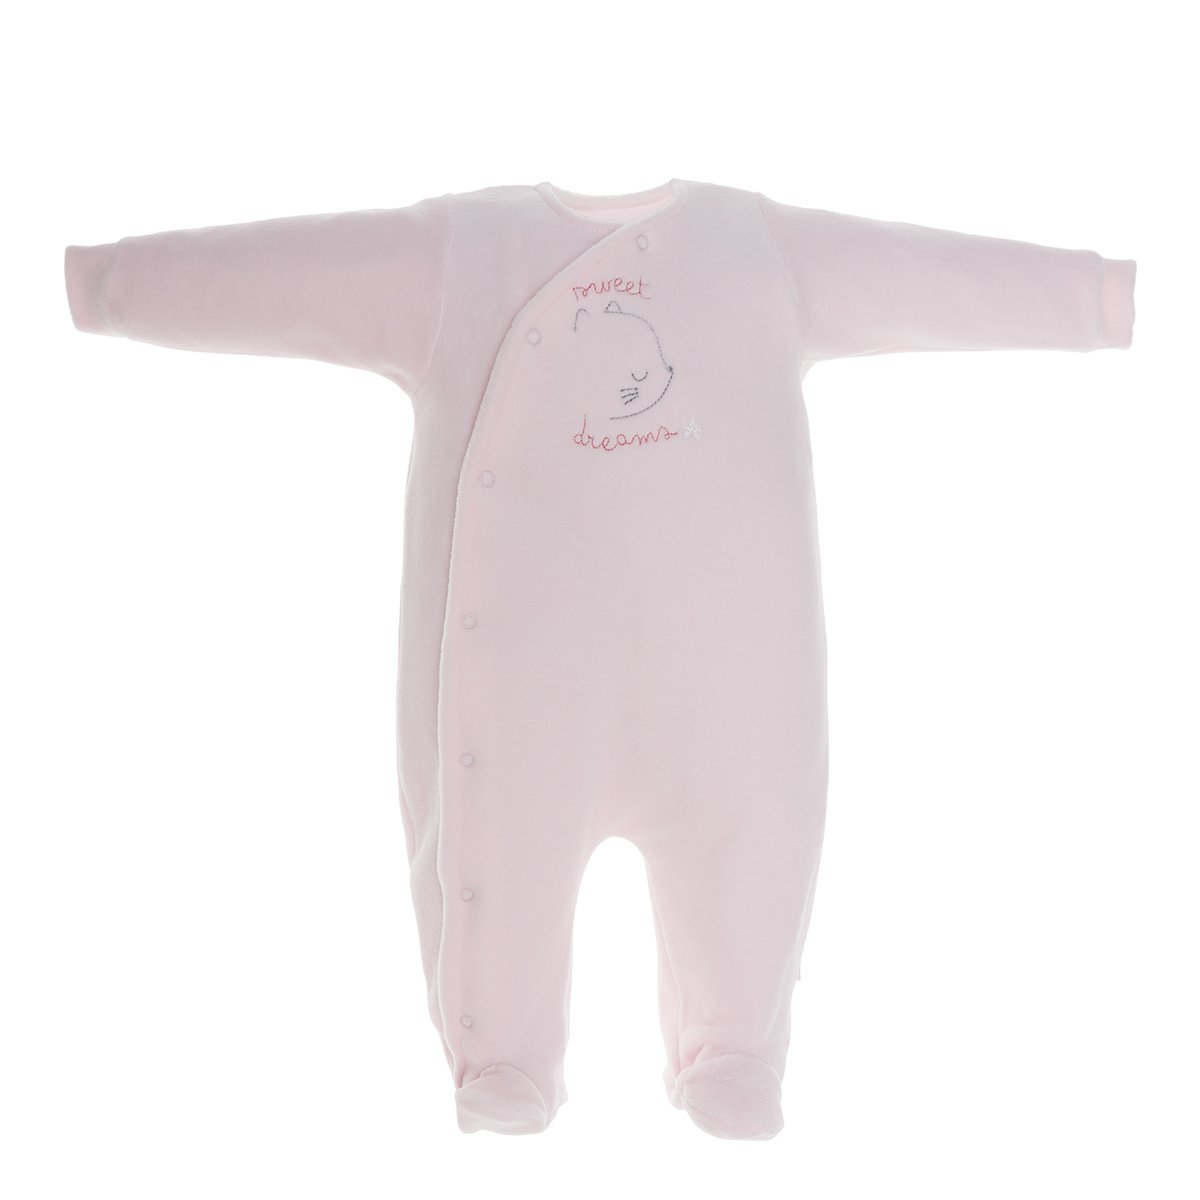 Cambrass 37127 Grenouill/ère Neonato B/éb/é Fille Taille Fabricant: 0 Rose Rosa 3